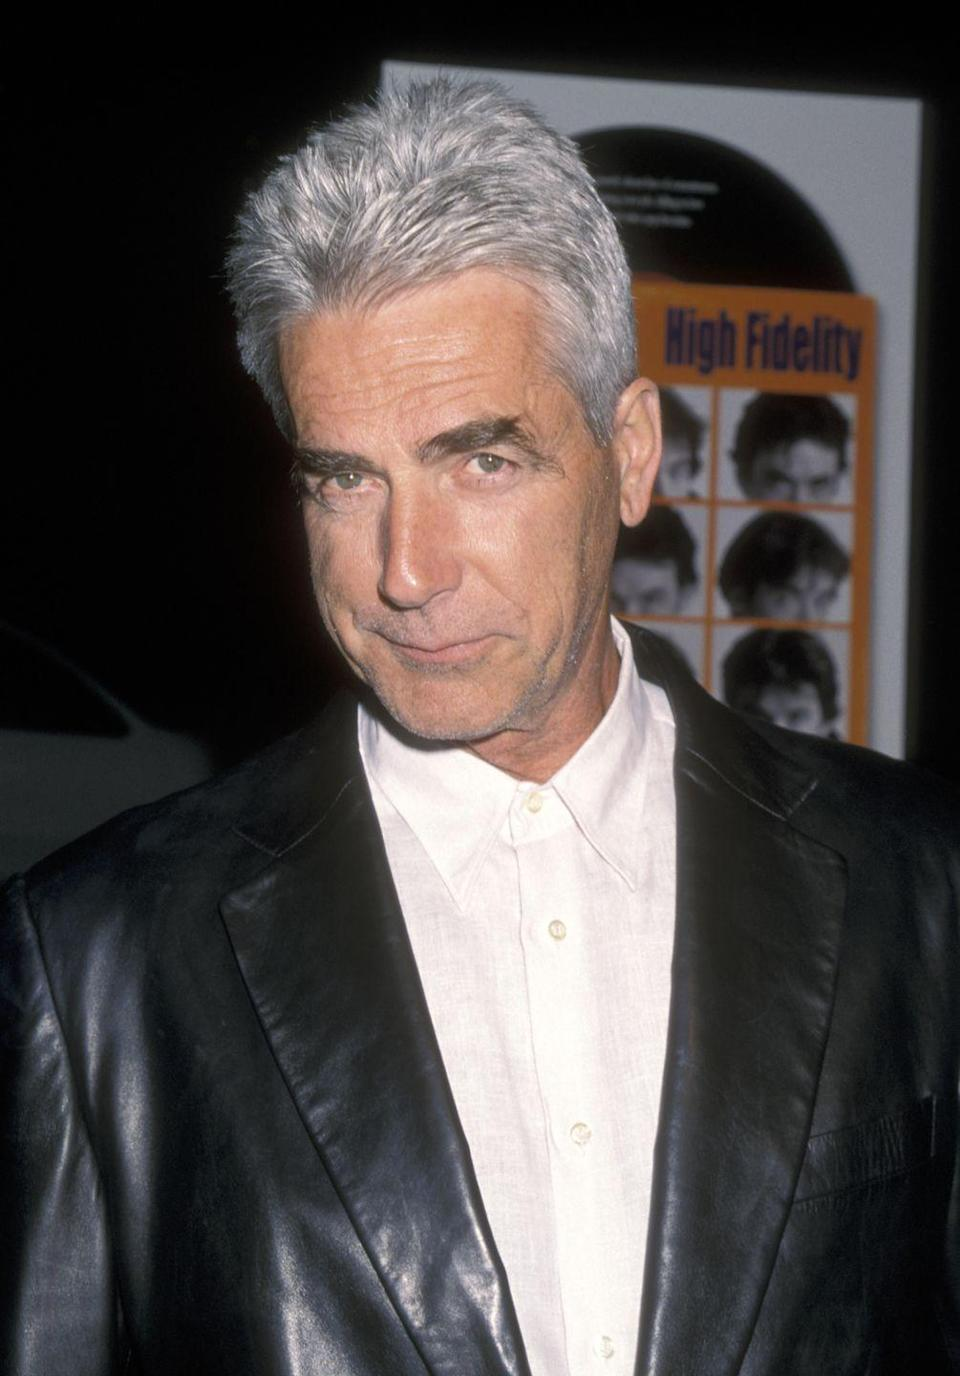 <p>Elliott attends the <em>High Fidelity</em> Hollywood premiere on March 28, 2000, at El Capitan Theatre in Hollywood, California.</p>